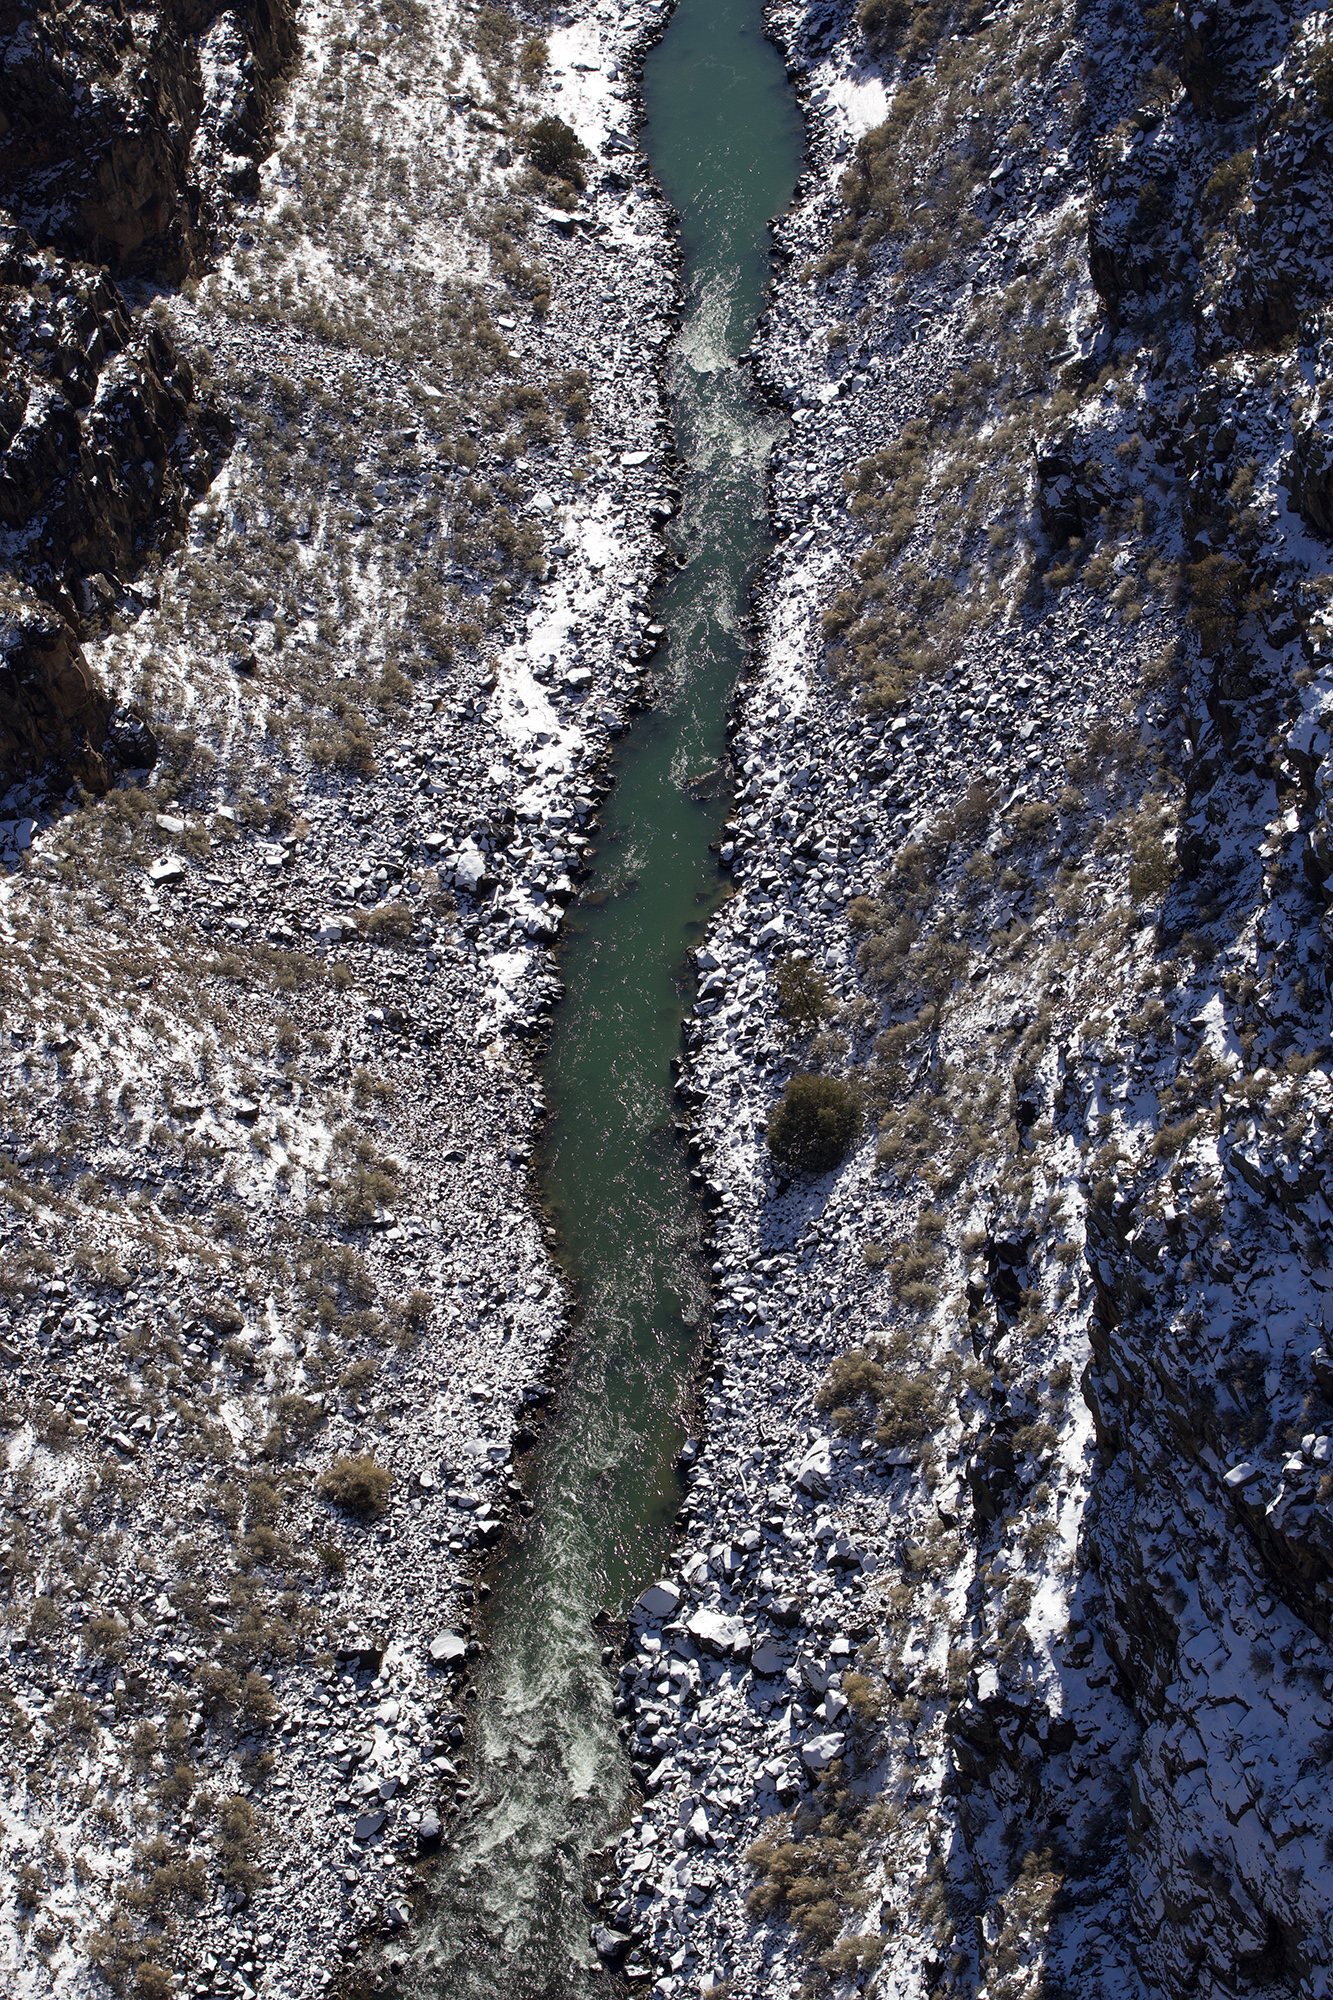 the view from the Rio Gorge Bridge near Taos, after a recent snowstorm